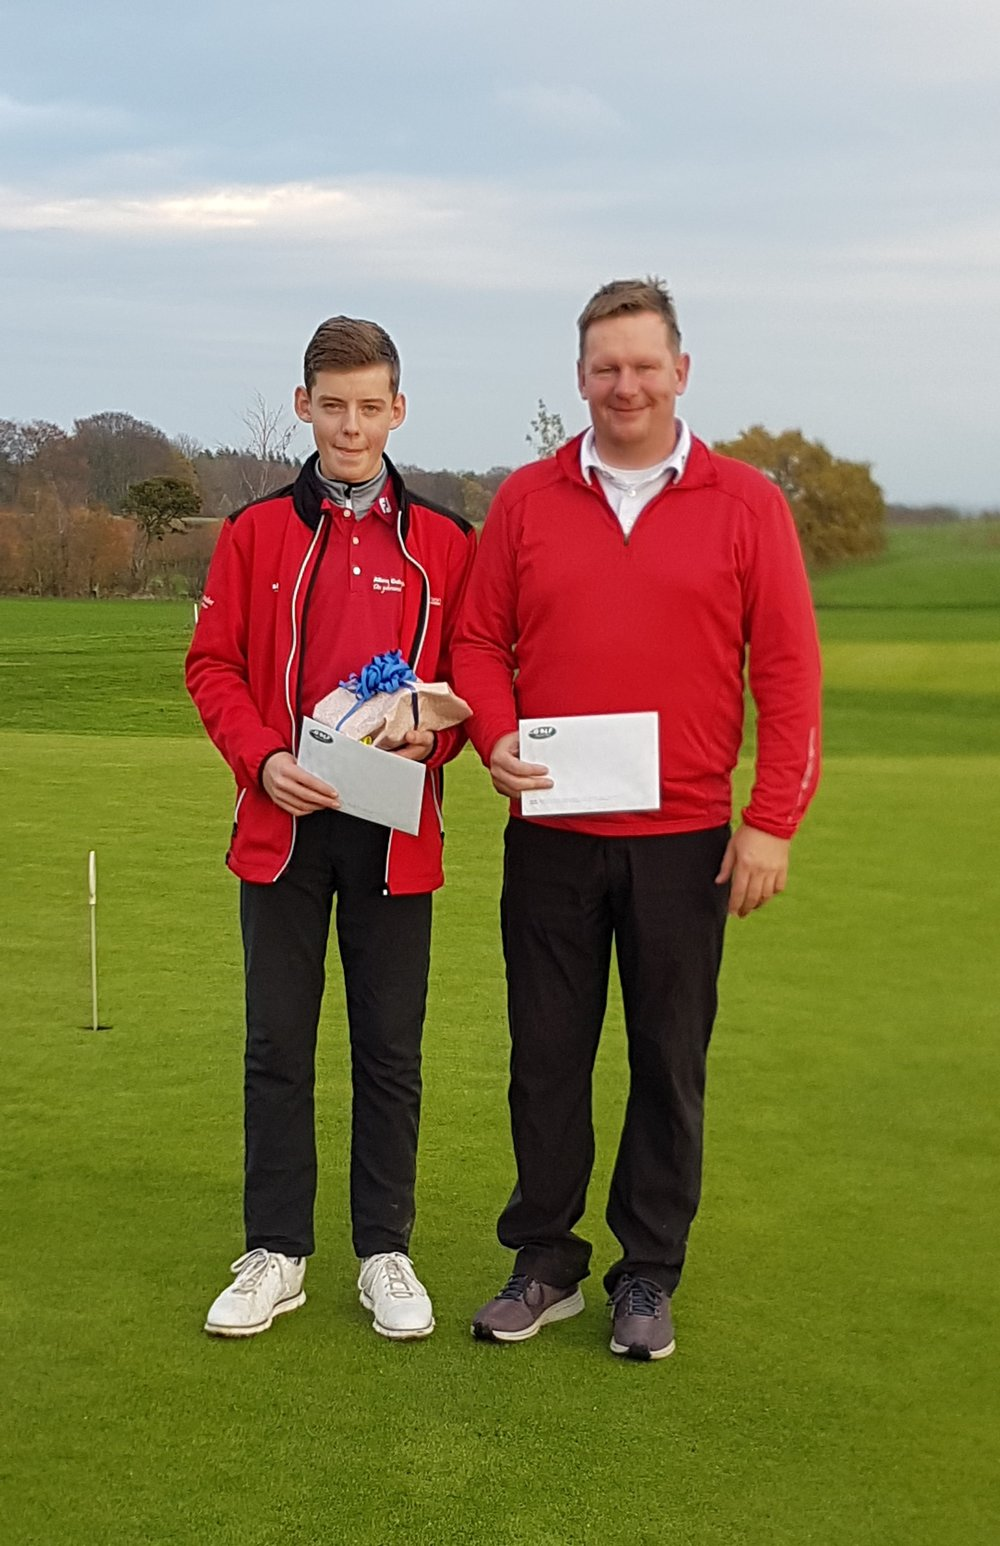 Vinderne af præmien for flest point på hul 18 med 4 point (birdie): Simon Jakobsen og Henrik Jakobsen.